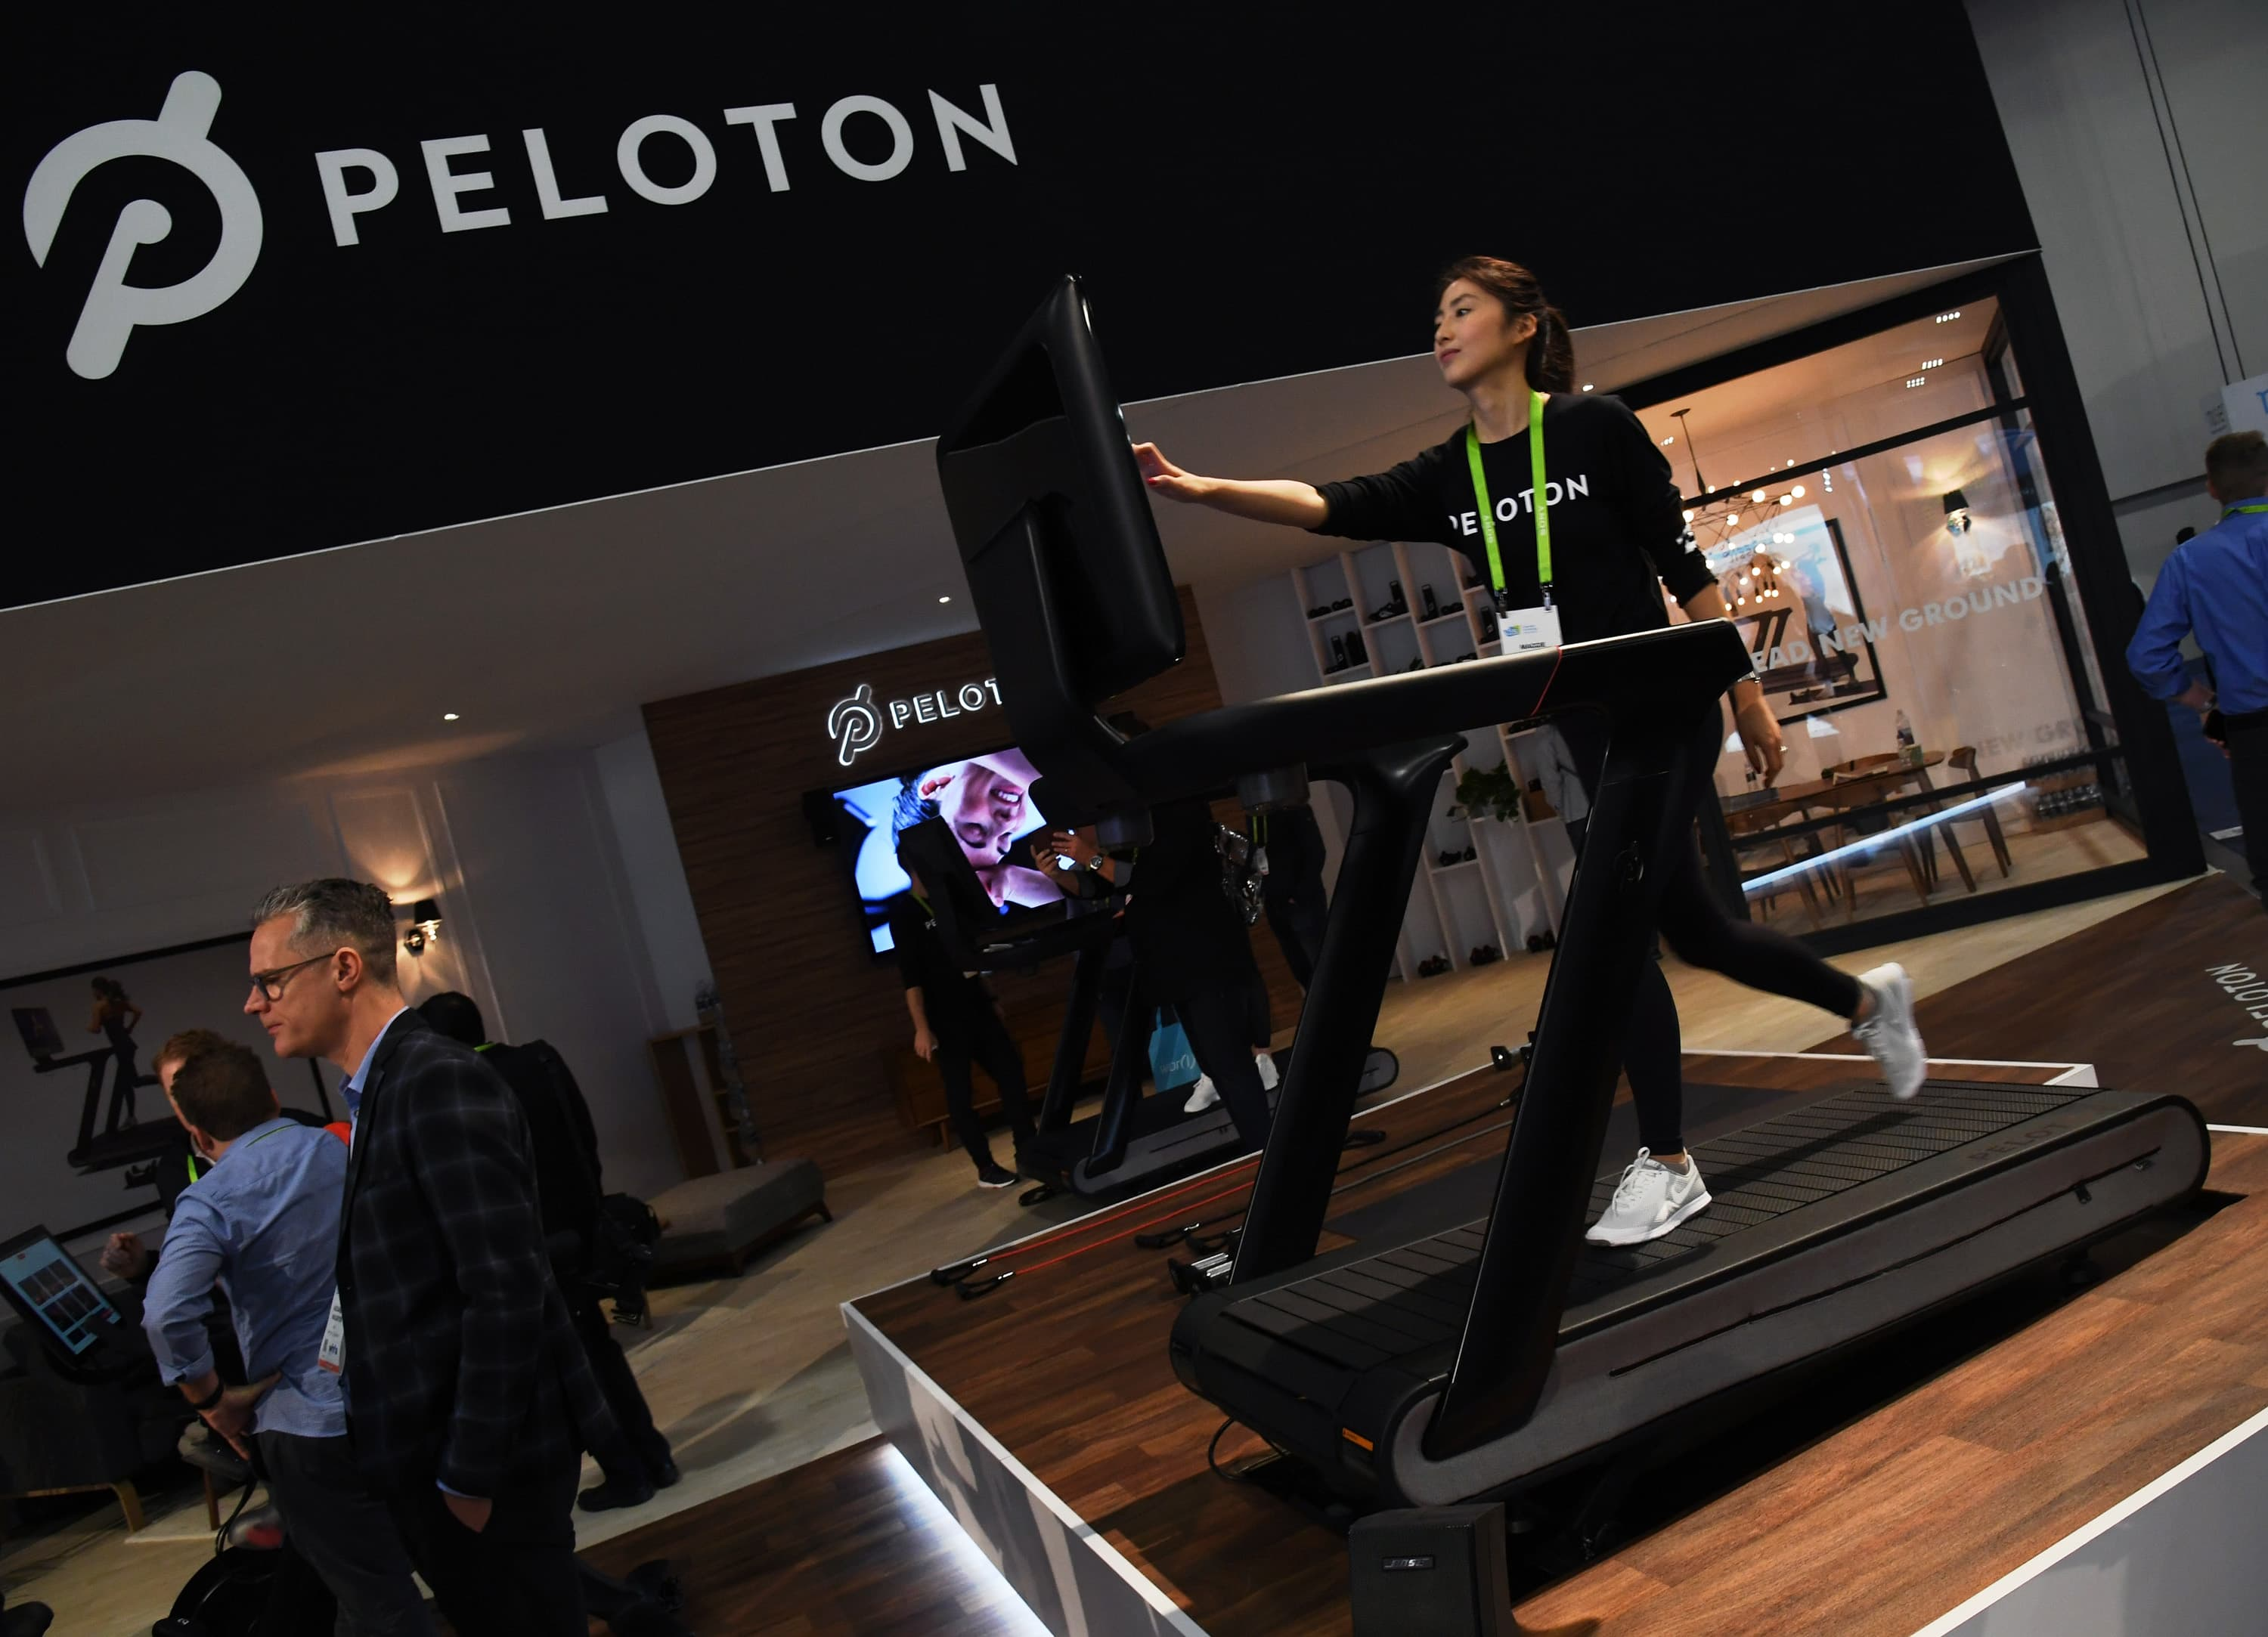 Peloton stock sheds $4 billion in market value in 1 day over its treadmill debacle